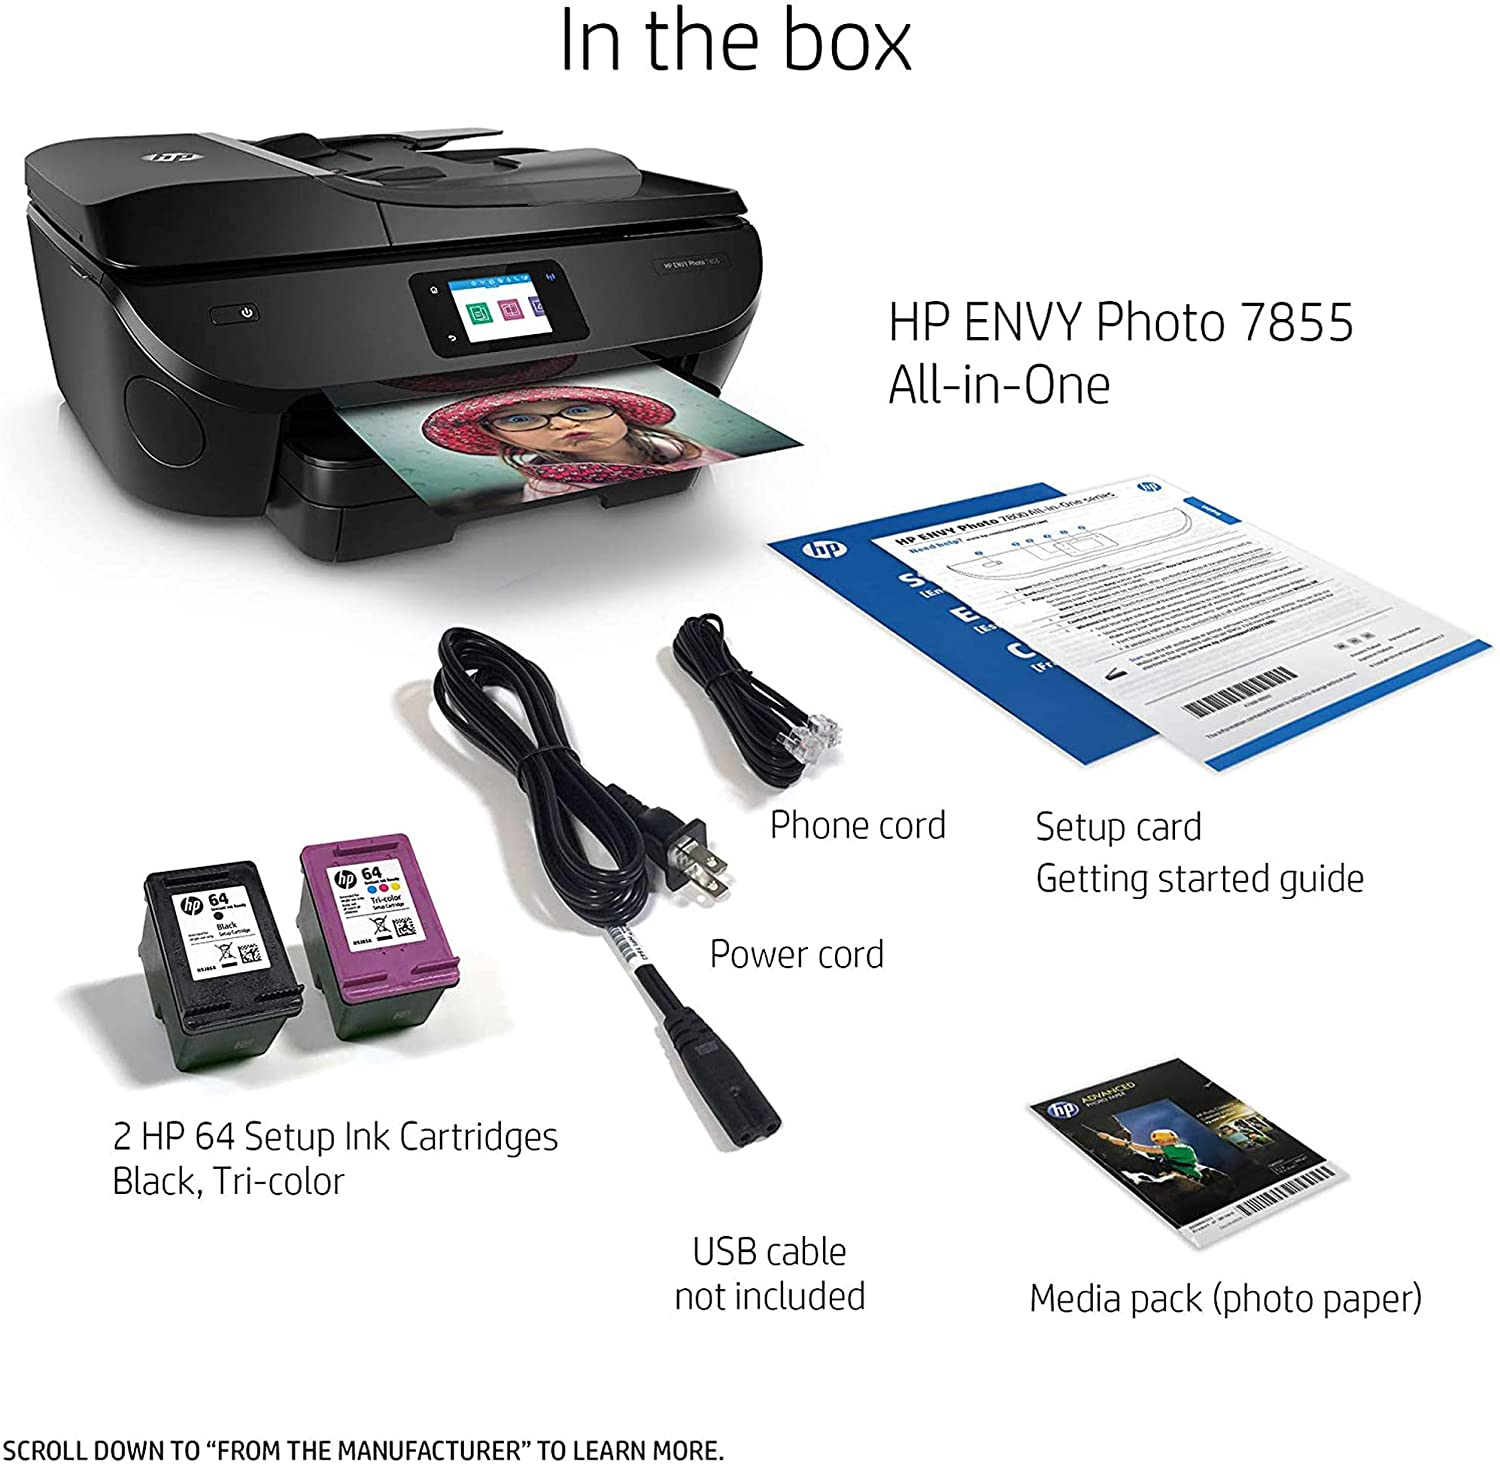 HP ENVY Photo 7855 All in One Photo Printer with Wireless Printing, HP Instant Ink ready, Works with Alexa